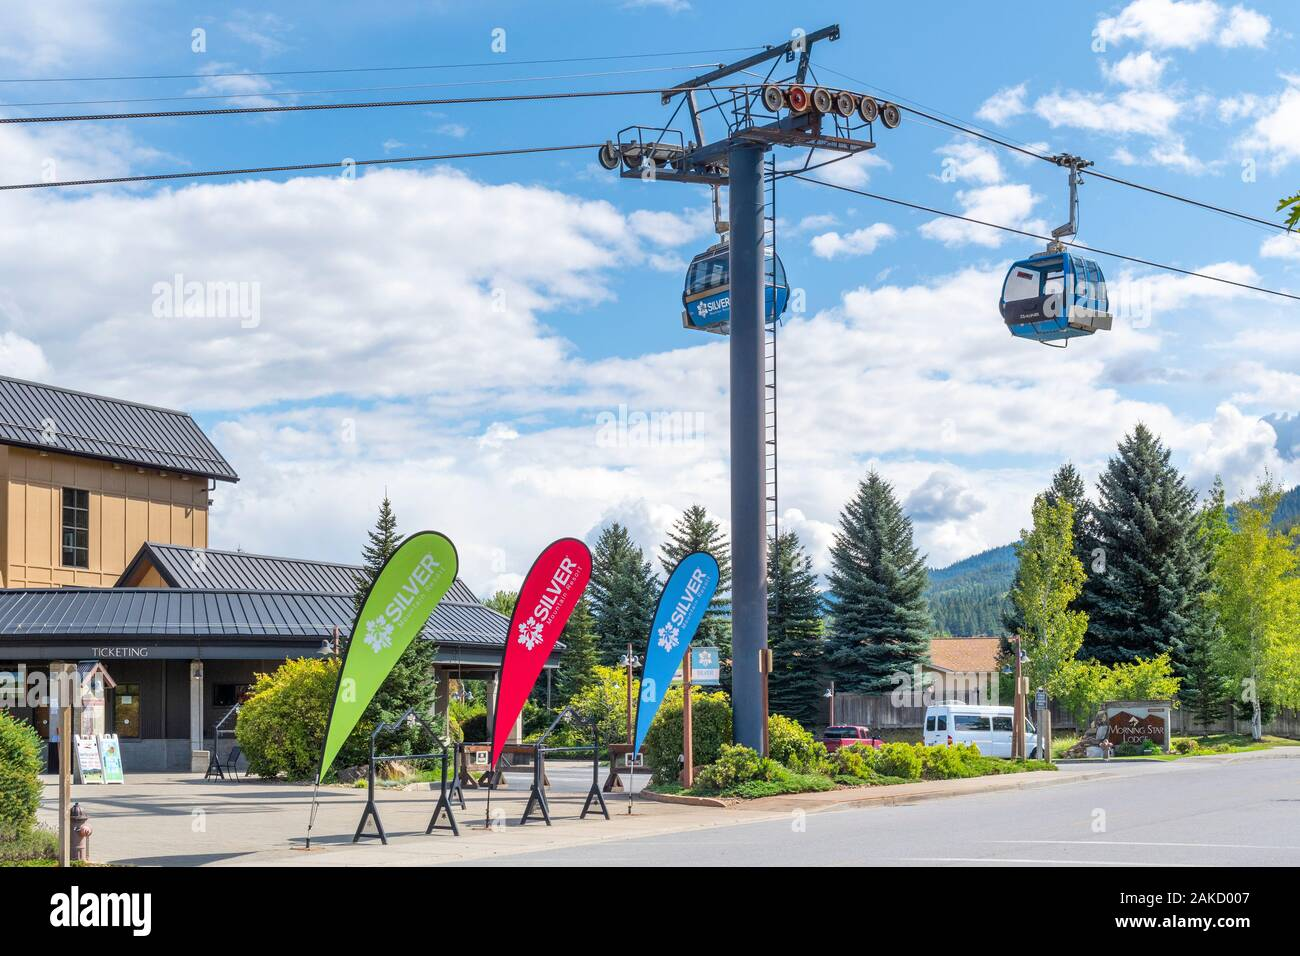 Gondolas pass by the Silver Mt Ski Resort, site of an avalanche that killed 2 skiers in January 2020 and the longest single span gondola in the world Stock Photo